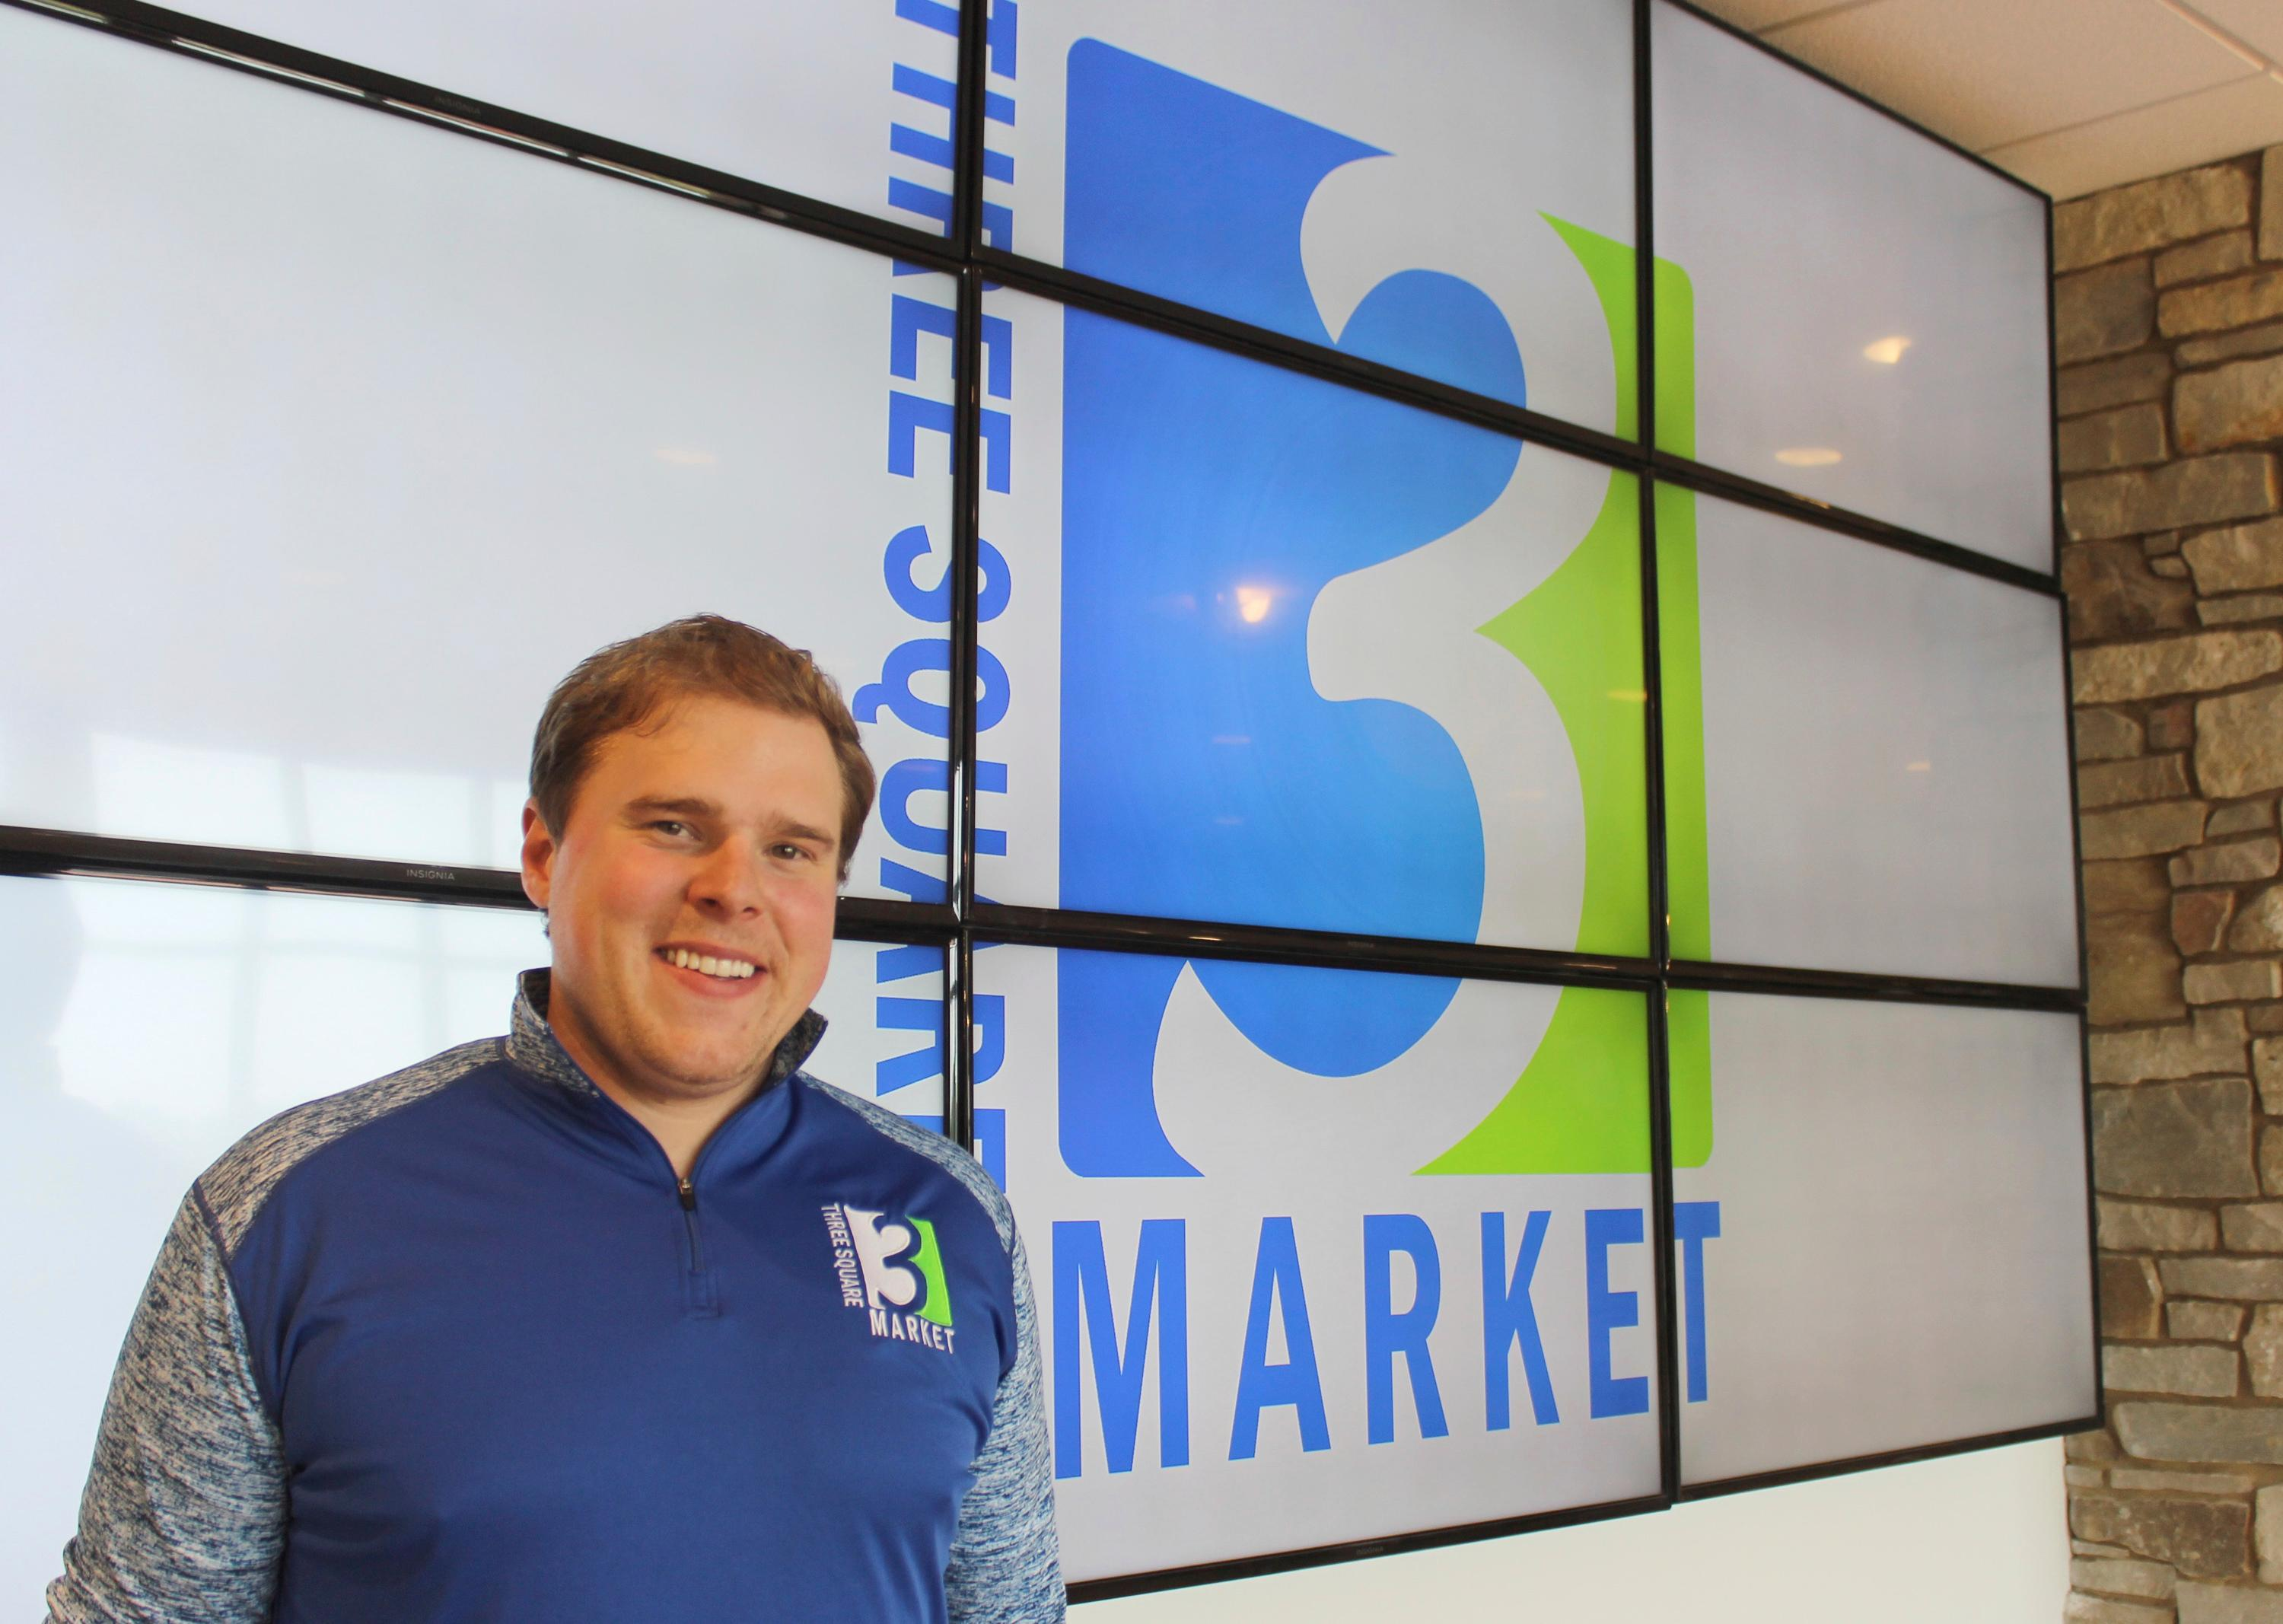 Tony Danna, vice president of international development at Three Square Market, poses in front of the company's logo at its headquarters, Tuesday, July 25, 2017 in River Falls, Wis. The software company is offering to microchip its employees, enabling them to open doors, log onto their computers and purchase break room snacks with a simple wave of the hand. (AP Photo/Jeff Baenen)